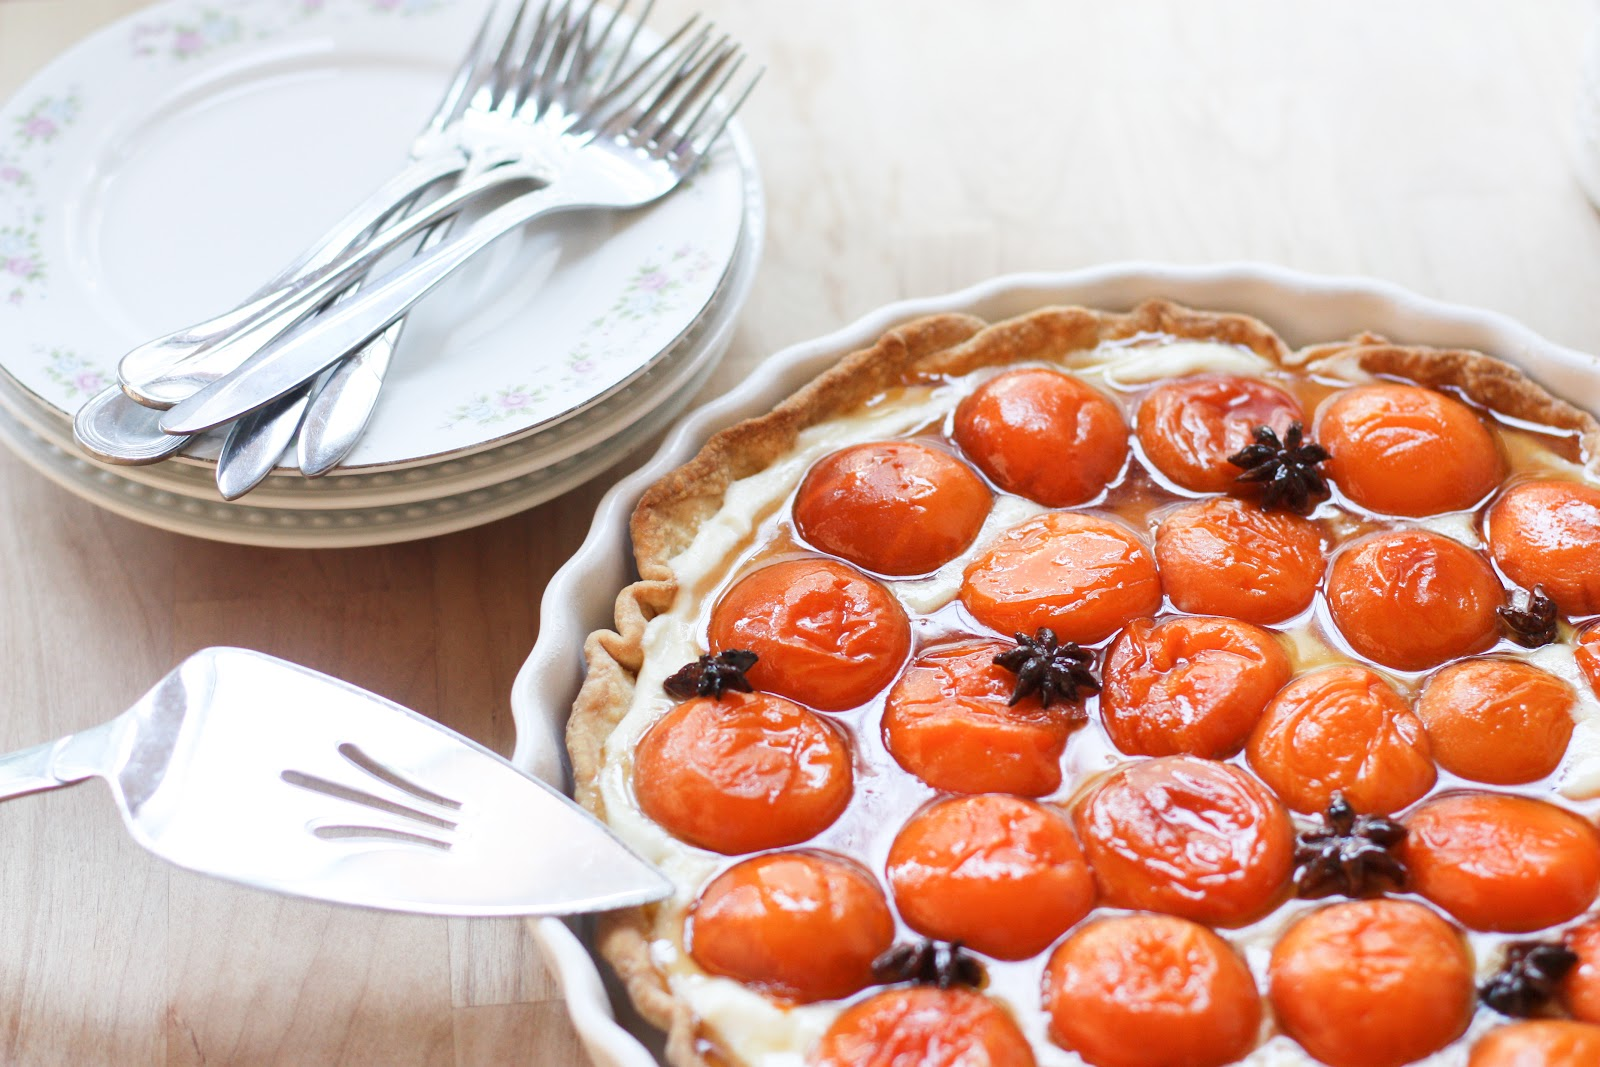 ... apricot anise tarts make apricot anise tarts how to make apricot anise